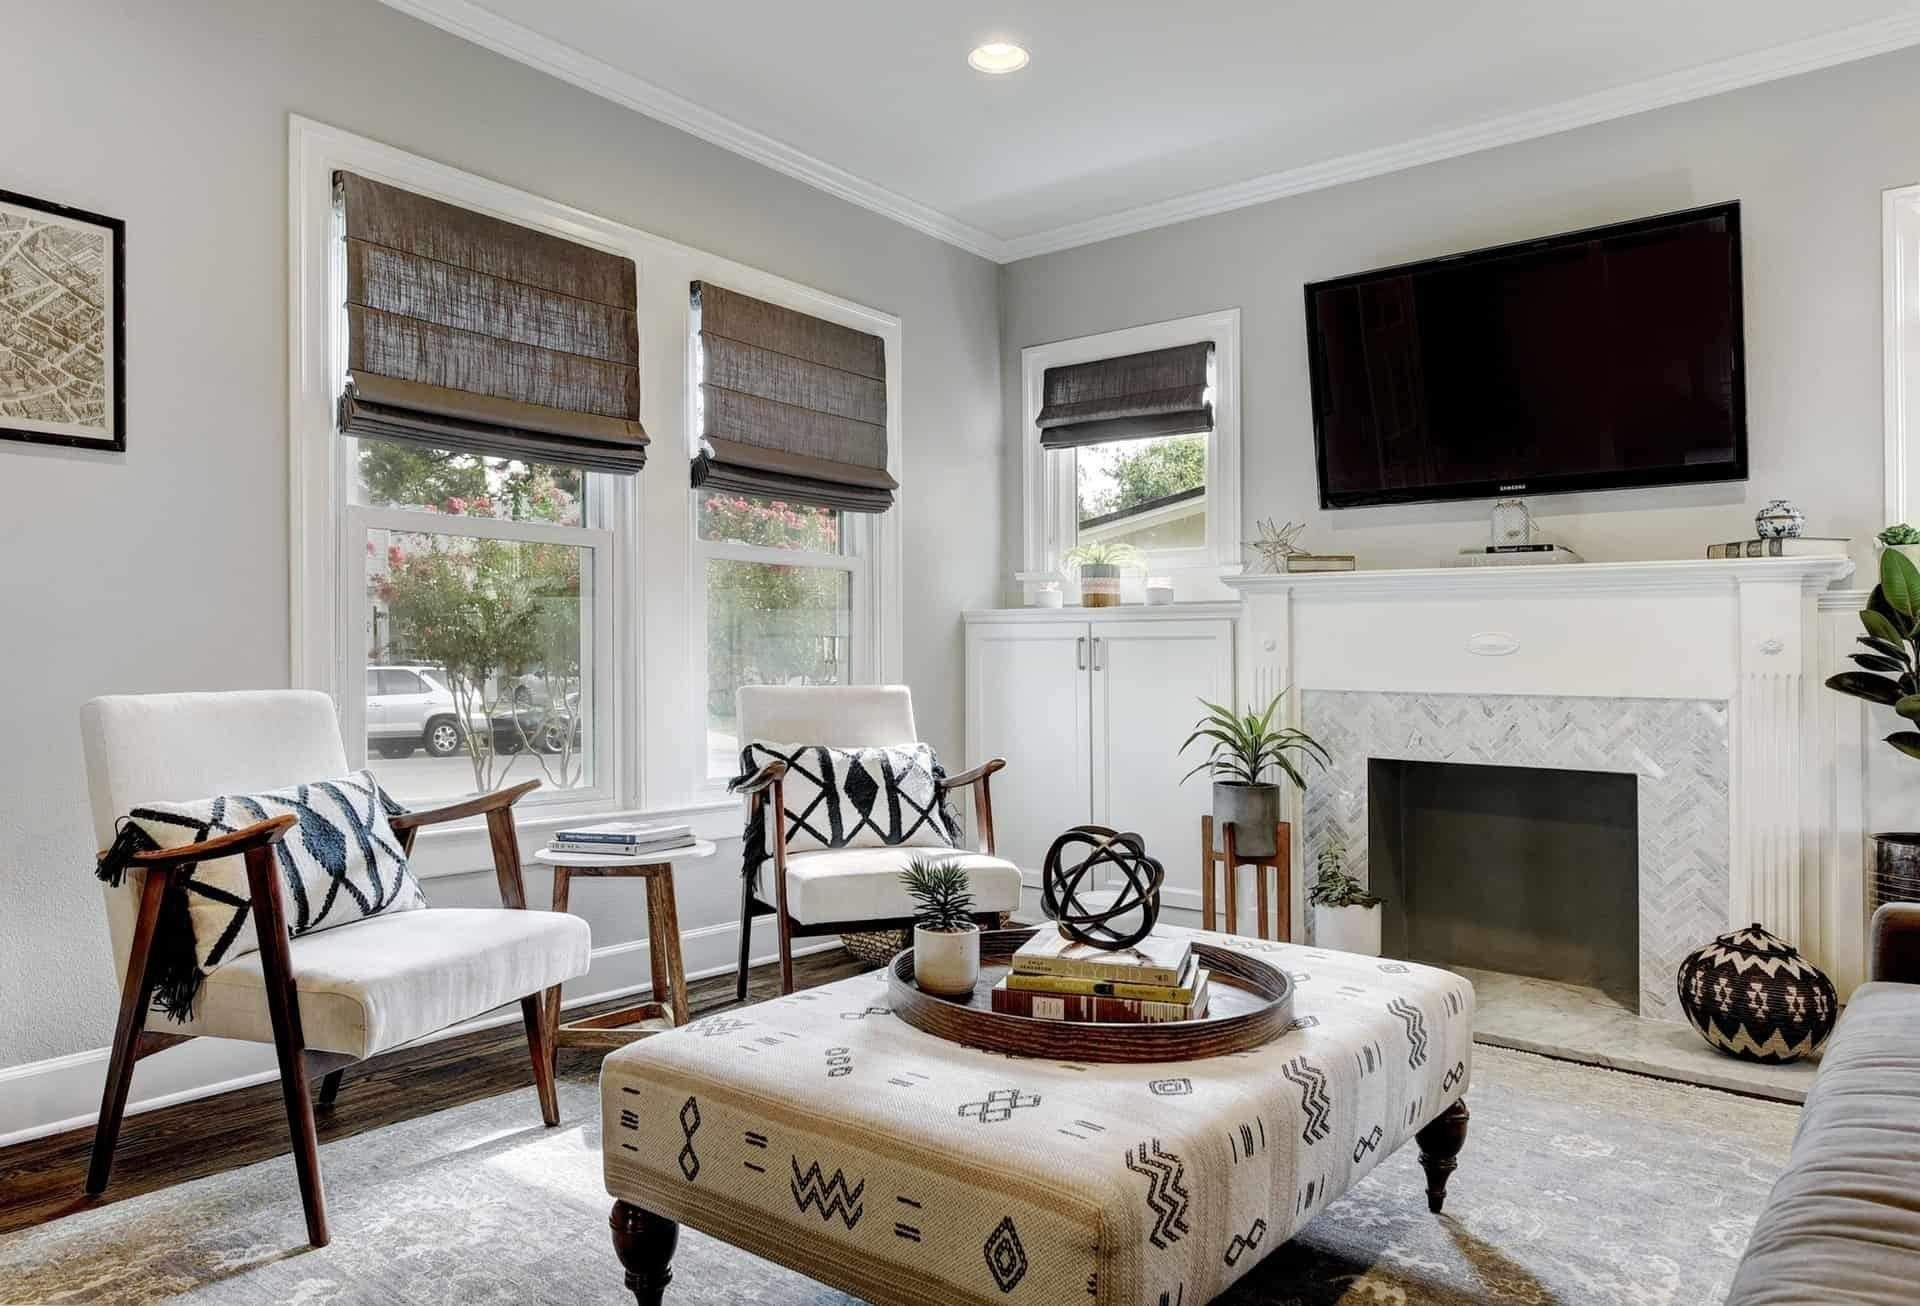 Home Interior Design, Accent Chairs with throw pillows, Etch Interior Design, Austin, Texas